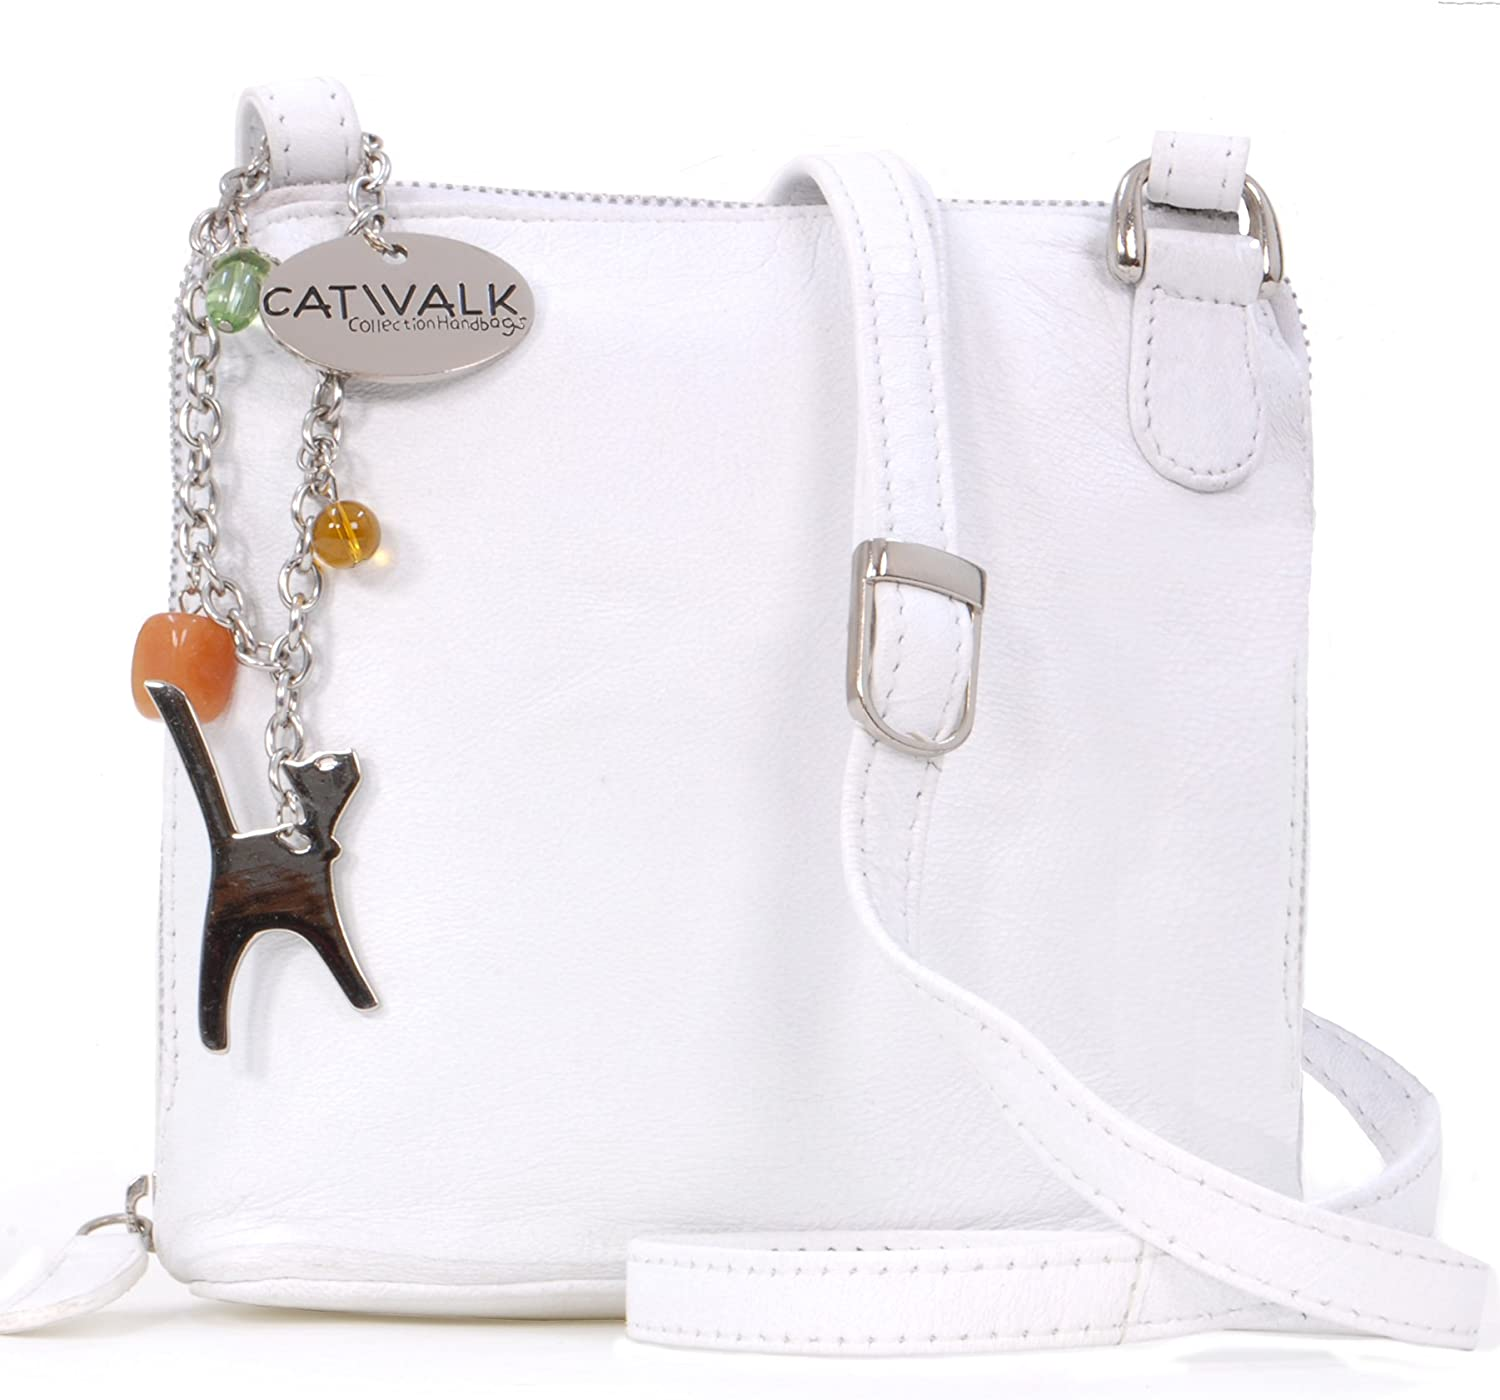 CATWALK COLLECTION - LENA - Bolso bandolera - Cuero